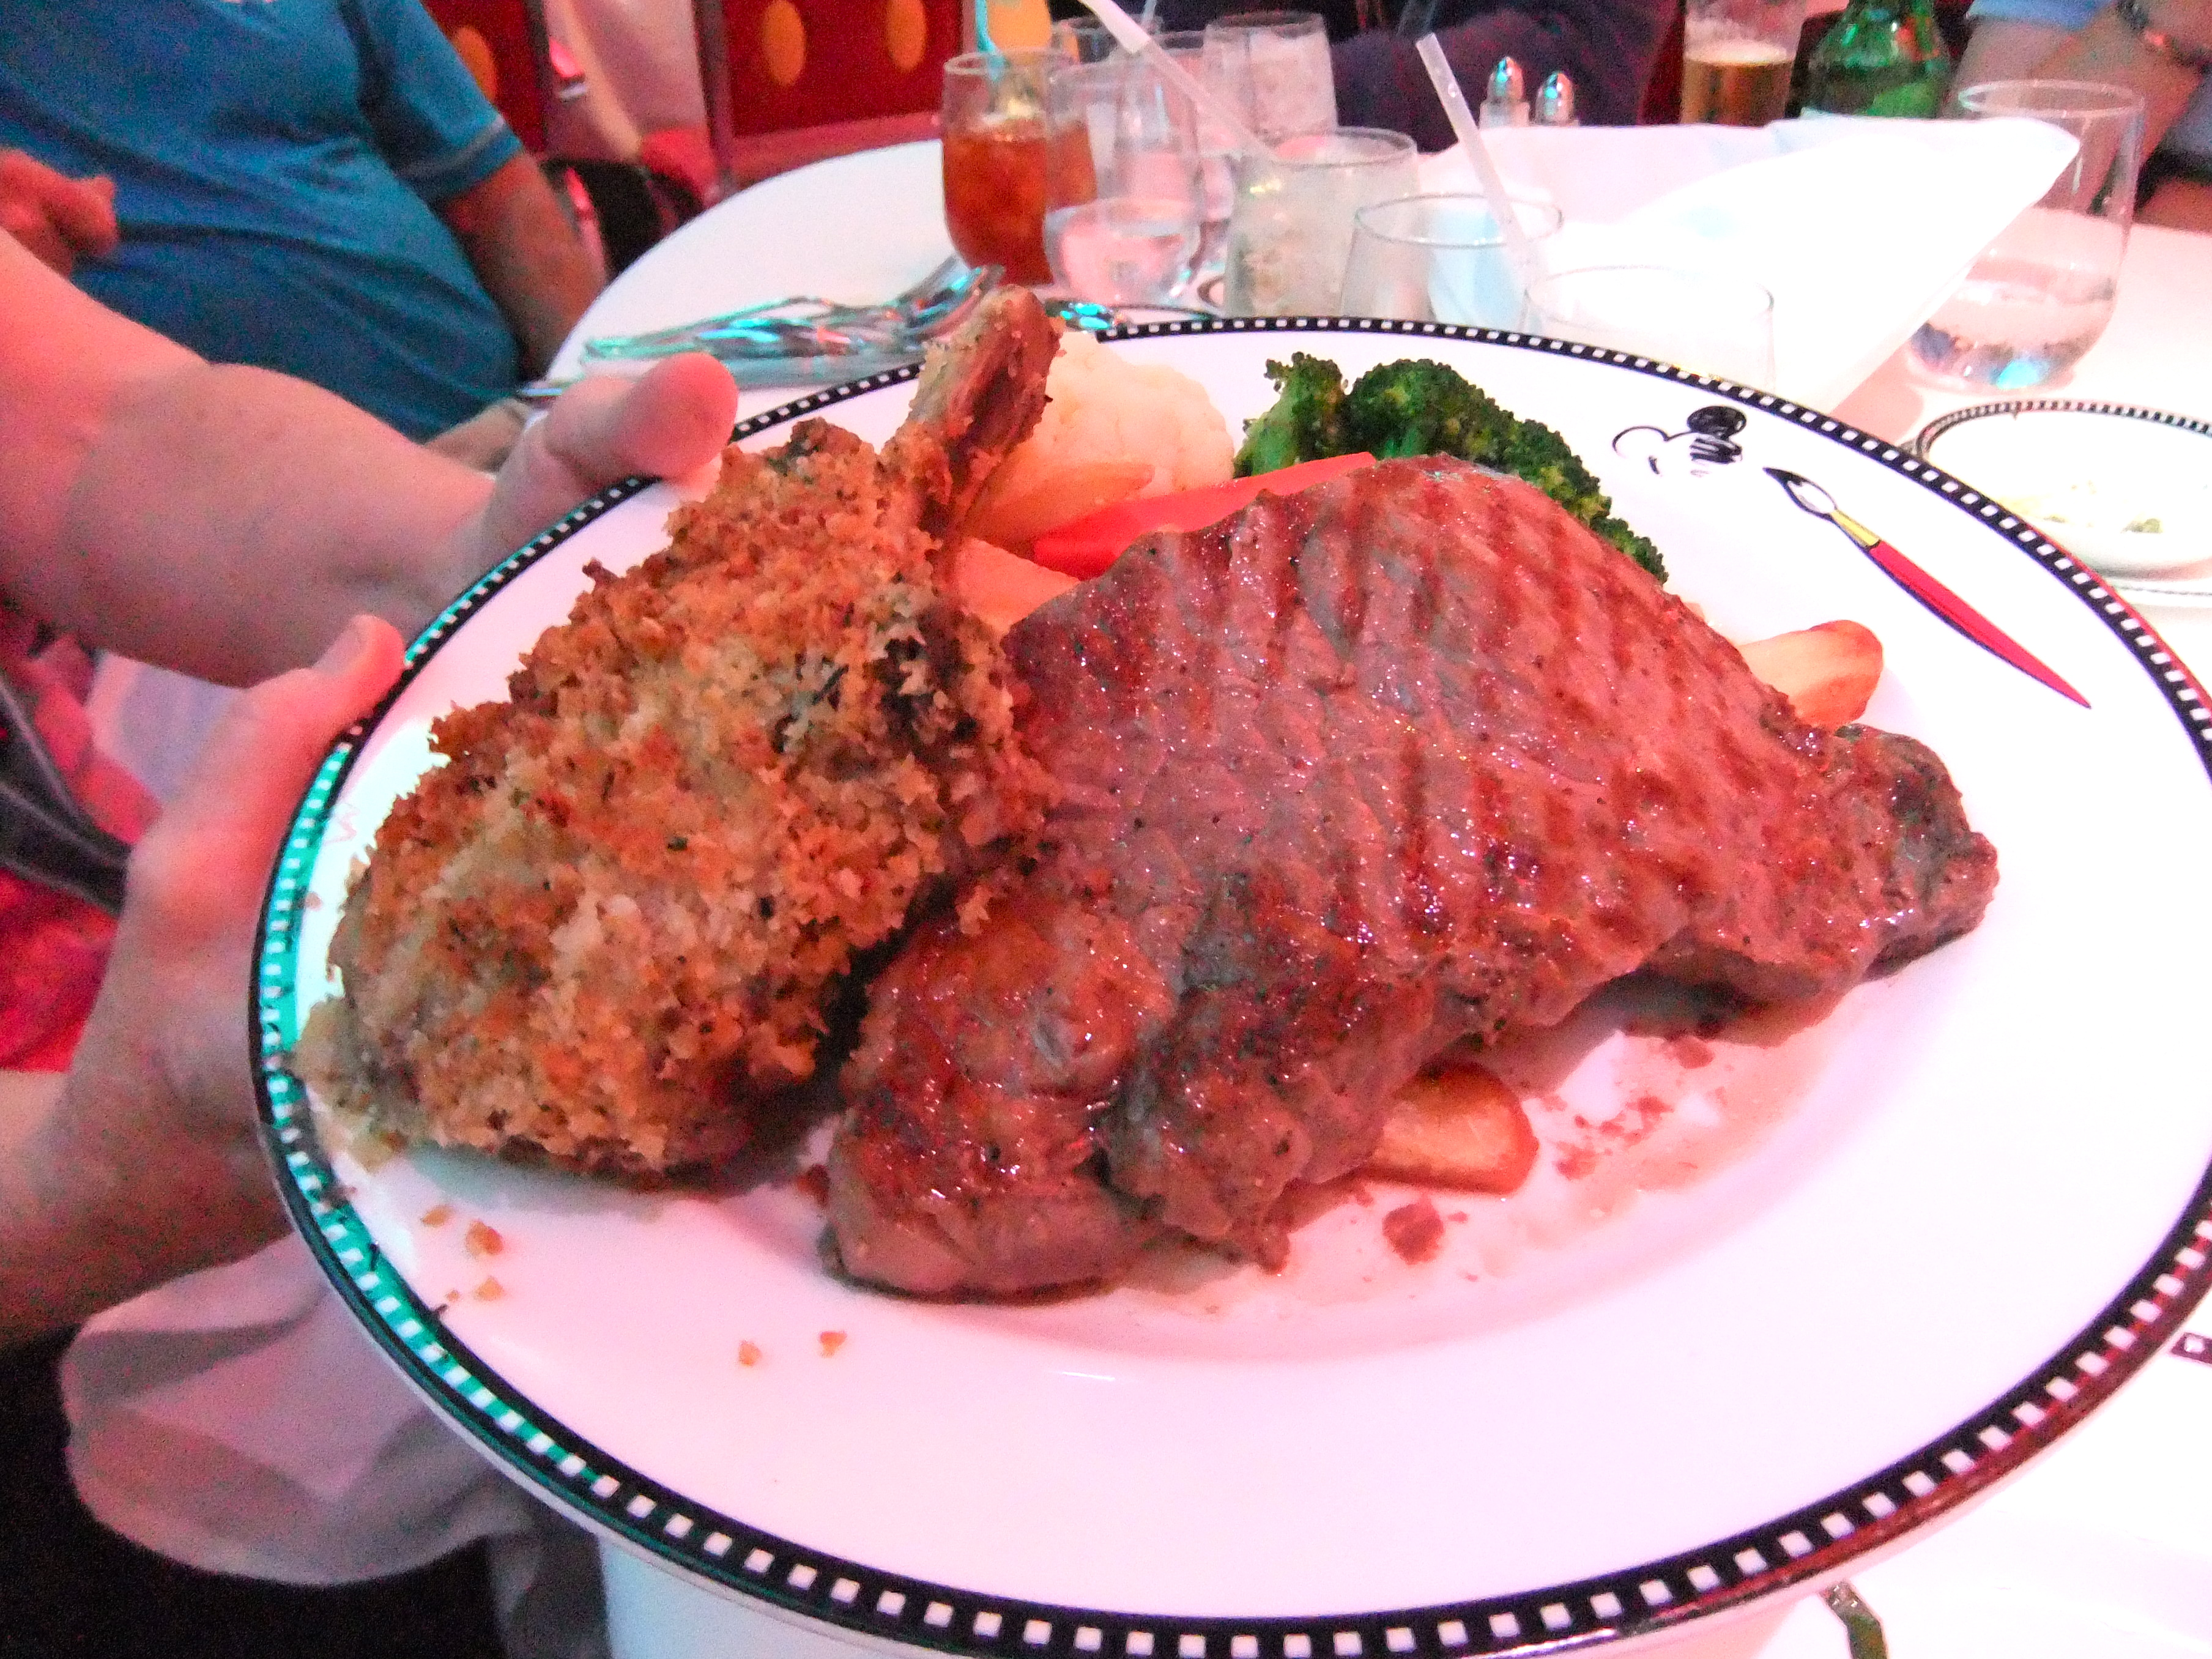 Herb Crusted Veal Chop, Grilled Sirloin, Steak Fries and Veggies ...